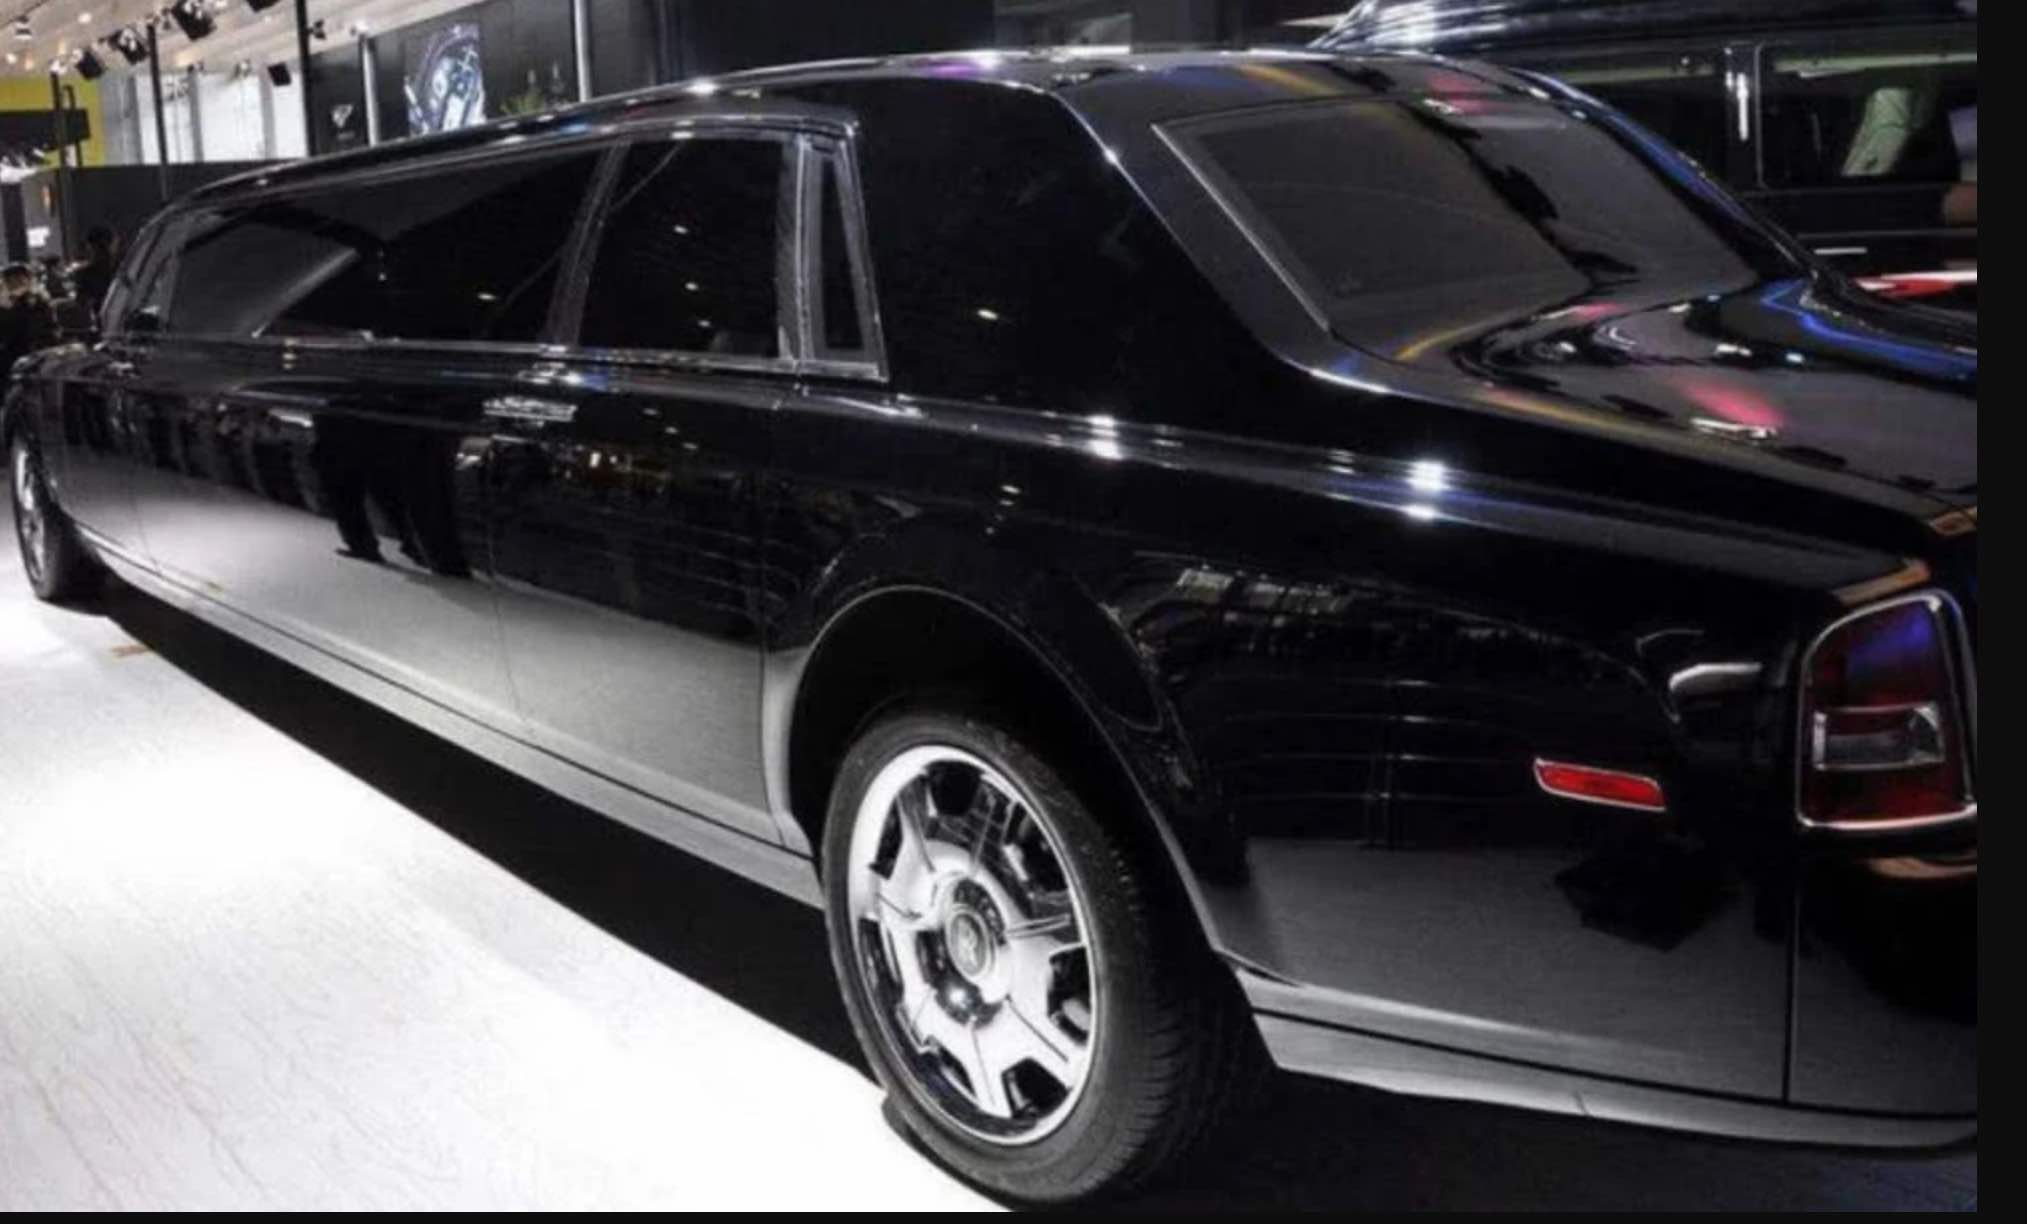 Why is Rolls-Royce so Expensive? Expert Says When you cut the Car Tires, you will understand!